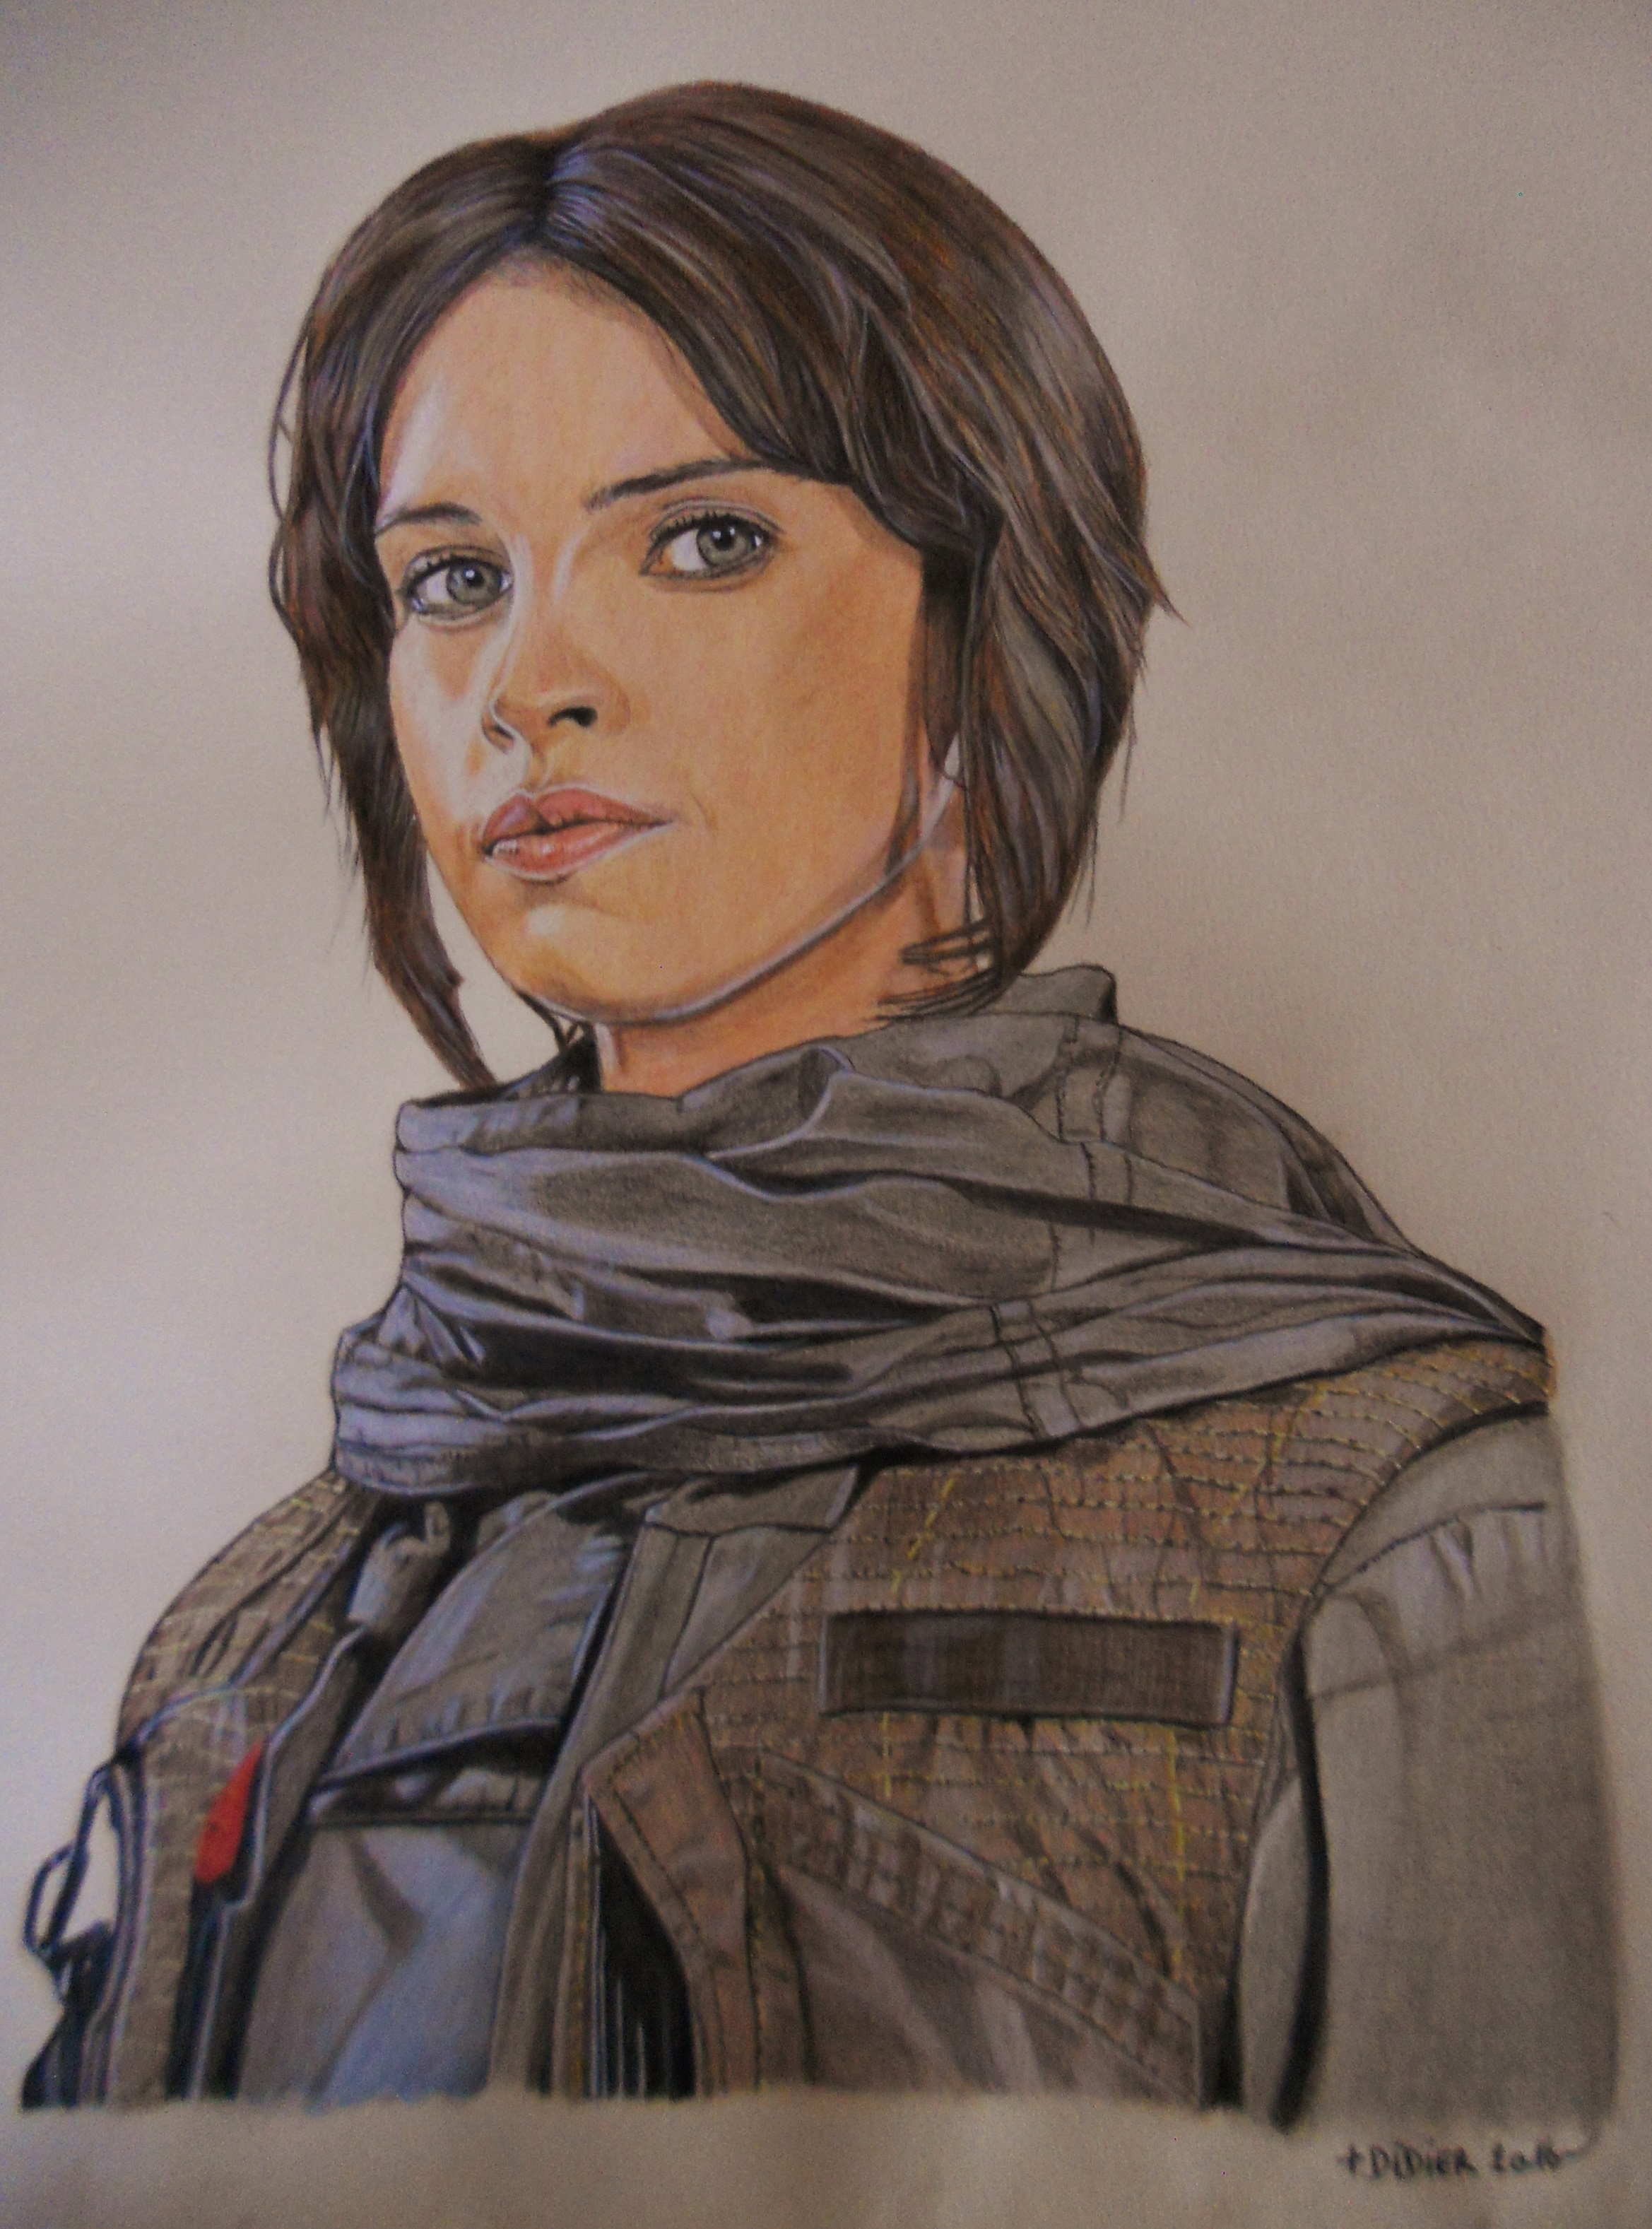 Star Wars - Rogue One : Jyn Erso